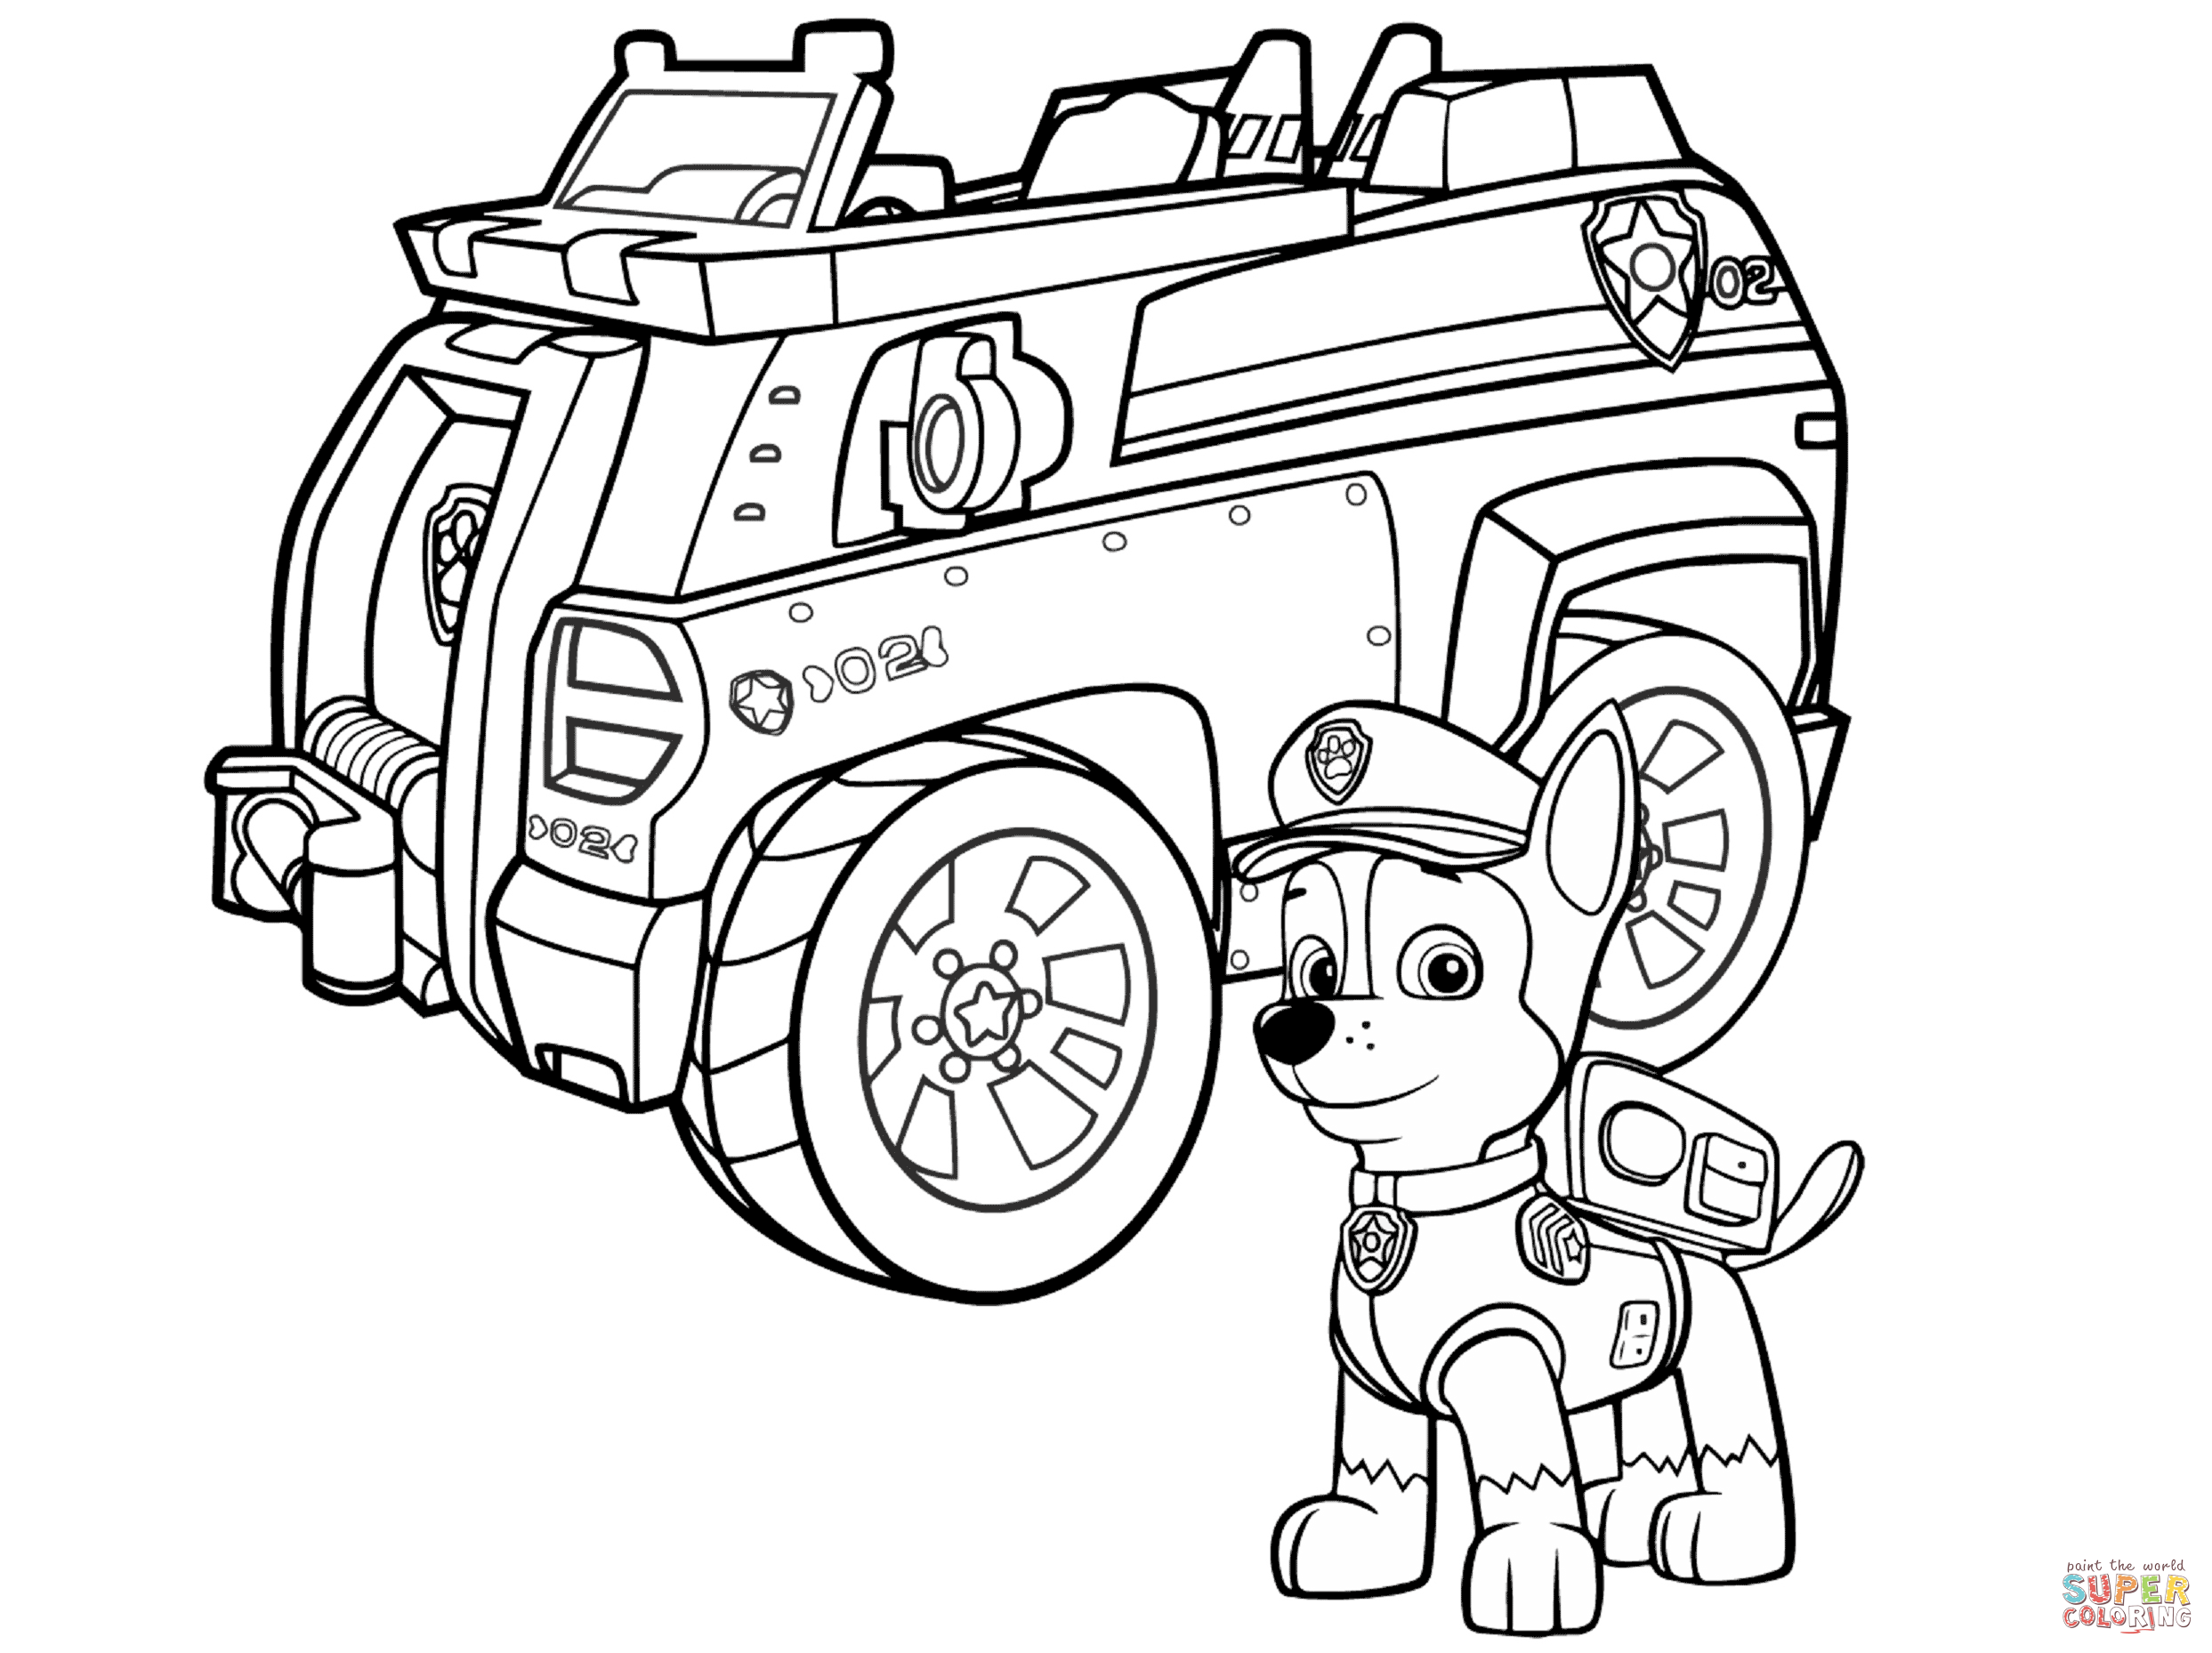 print paw patrol coloring pages paw patrol merry christmas coloring page tsgoscom print patrol pages coloring paw